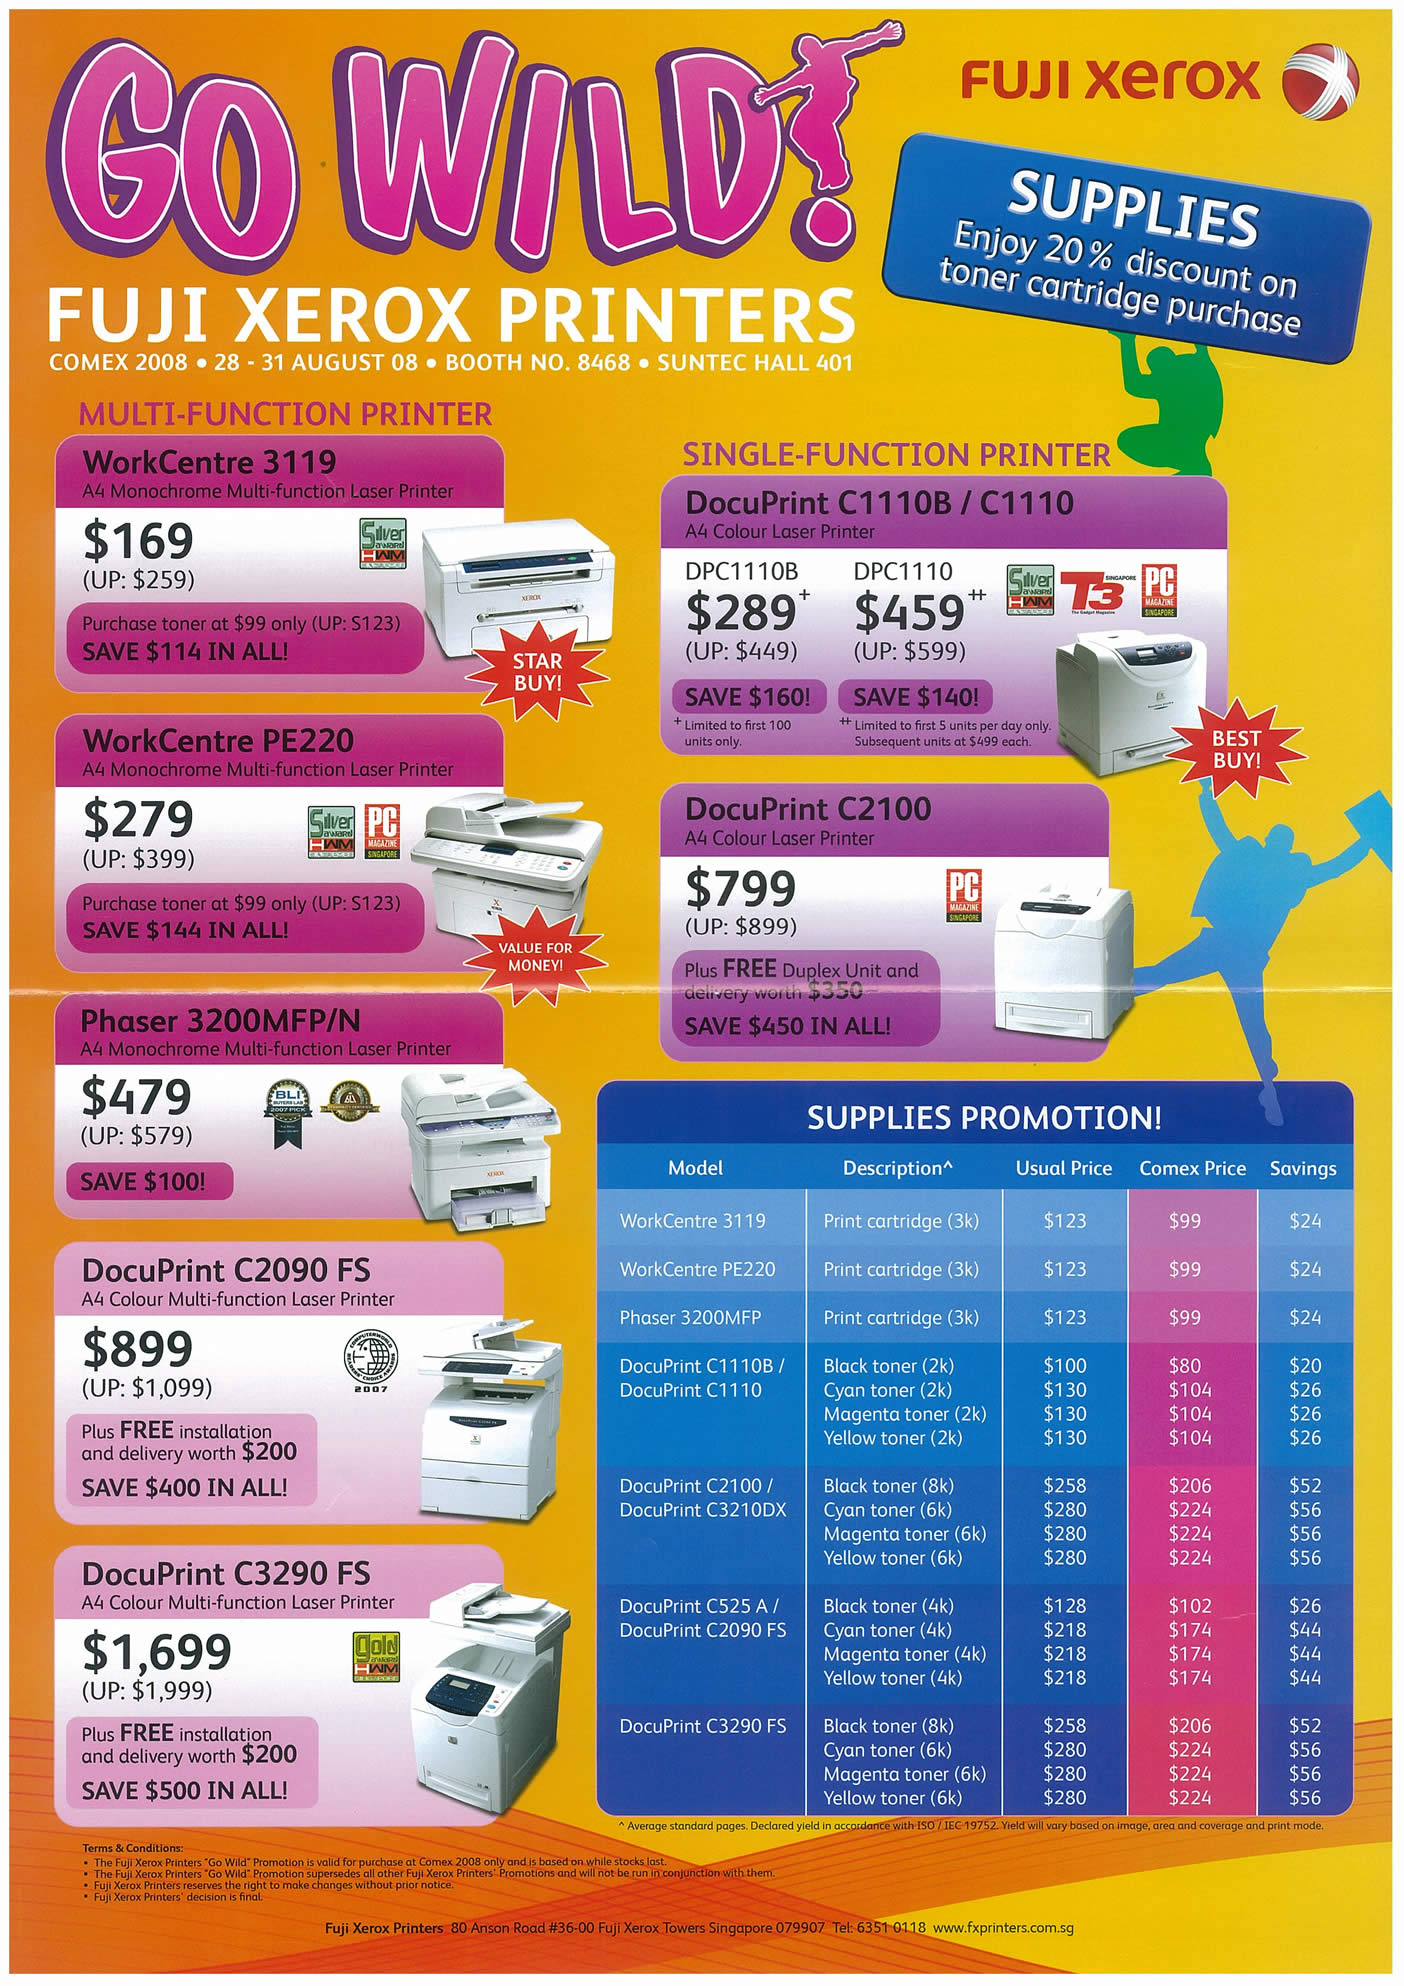 Comex 2008 price list image brochure of Fuji Xerox Printers Page 1